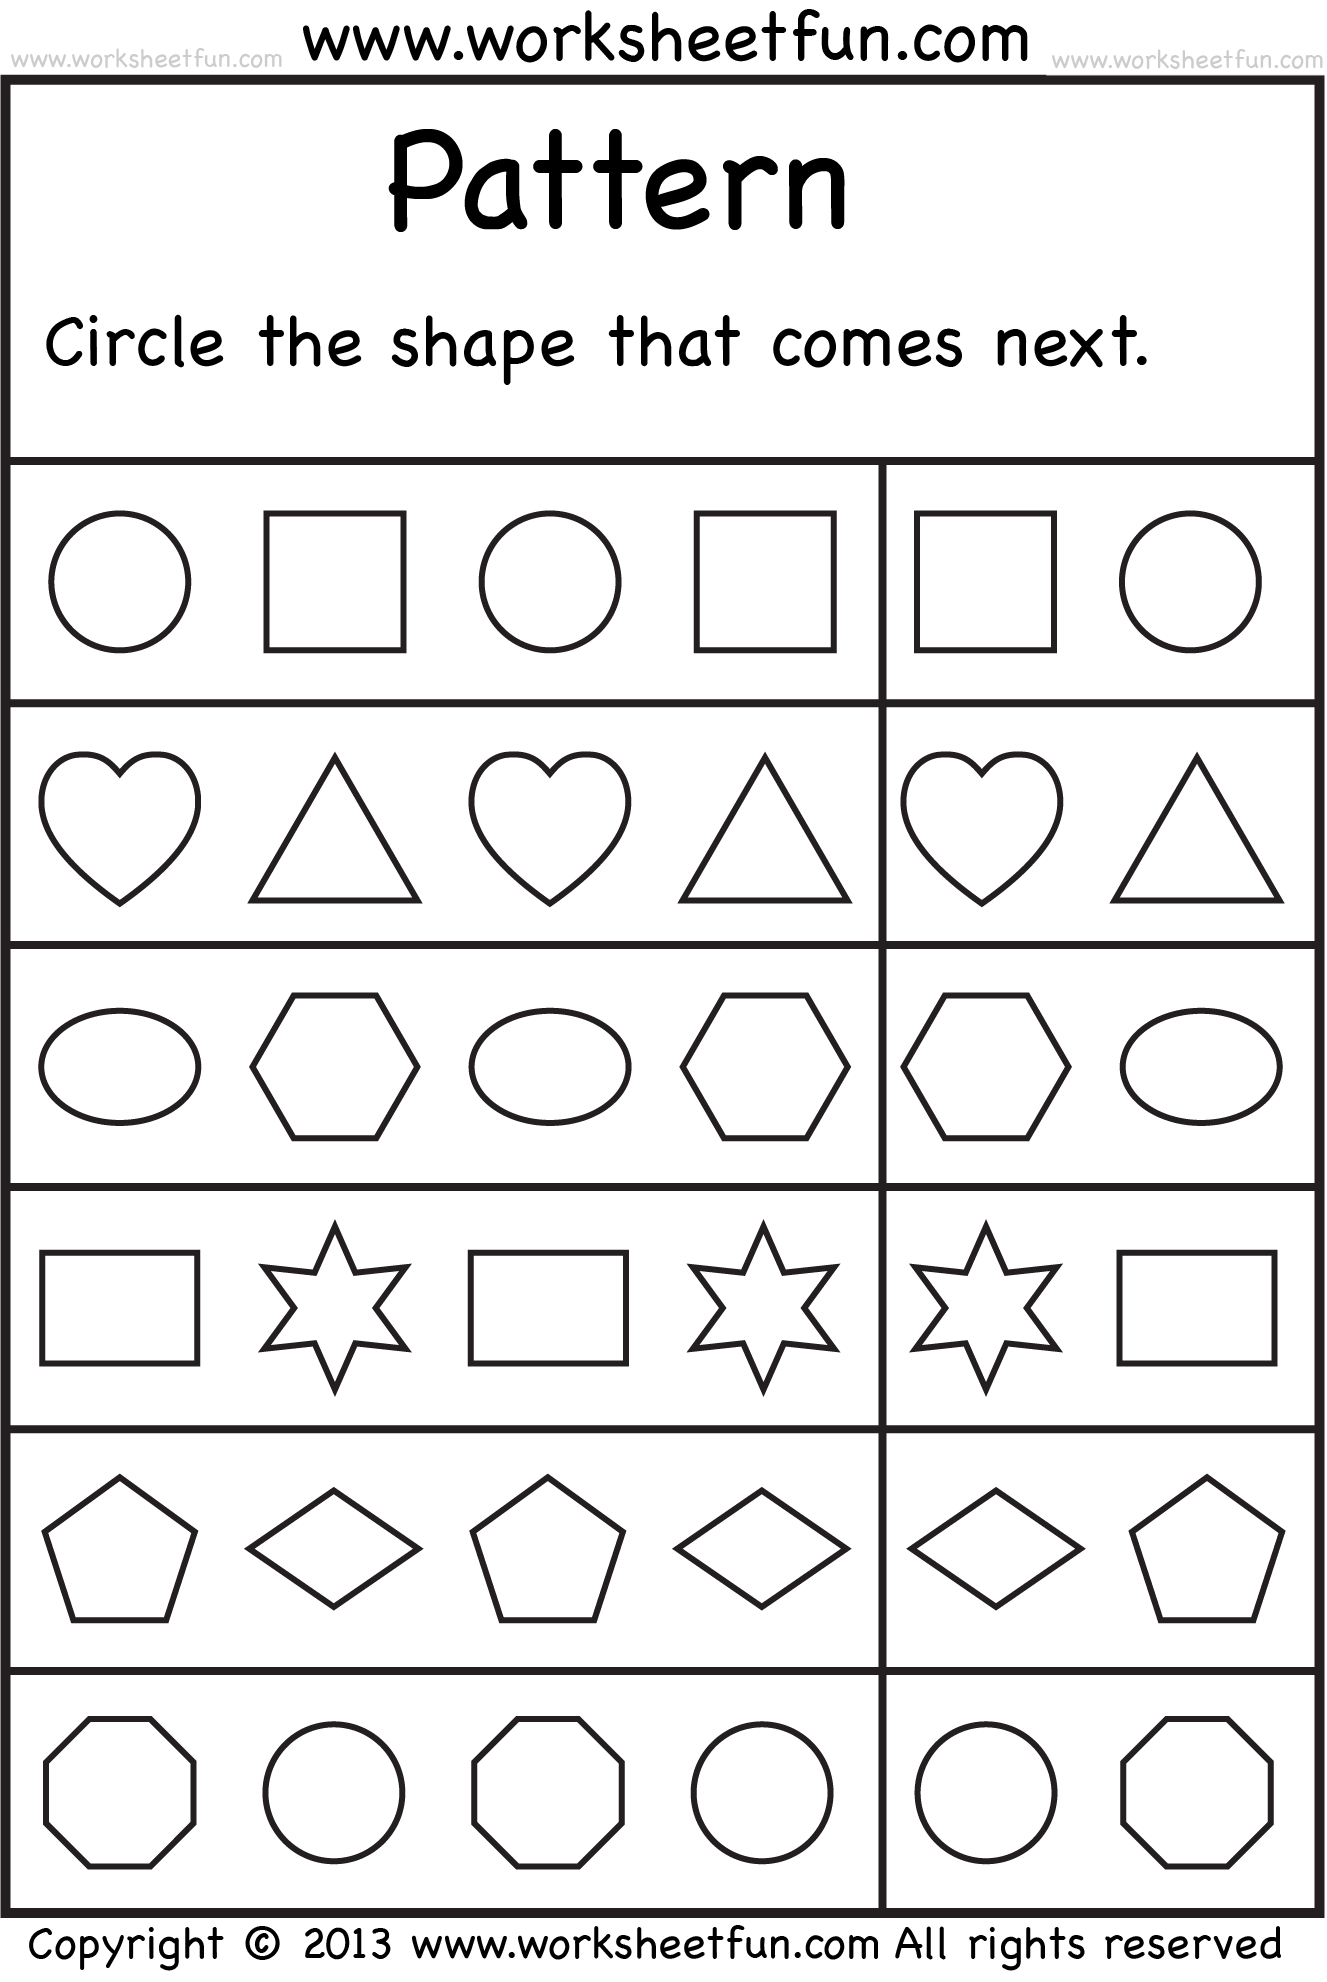 Weirdmailus  Winning  Images About School Worksheets On Pinterest  Number Words  With Handsome  Images About School Worksheets On Pinterest  Number Words Alphabet Worksheets And Free Printable Kindergarten Worksheets With Adorable Daily Edit Worksheets Also Percent Applications Worksheet In Addition Solid Shapes Worksheets And Coordinate Plane Mystery Picture Worksheets Free As Well As Fraction Worksheets Grade  Additionally Trace Abc Worksheet From Pinterestcom With Weirdmailus  Handsome  Images About School Worksheets On Pinterest  Number Words  With Adorable  Images About School Worksheets On Pinterest  Number Words Alphabet Worksheets And Free Printable Kindergarten Worksheets And Winning Daily Edit Worksheets Also Percent Applications Worksheet In Addition Solid Shapes Worksheets From Pinterestcom